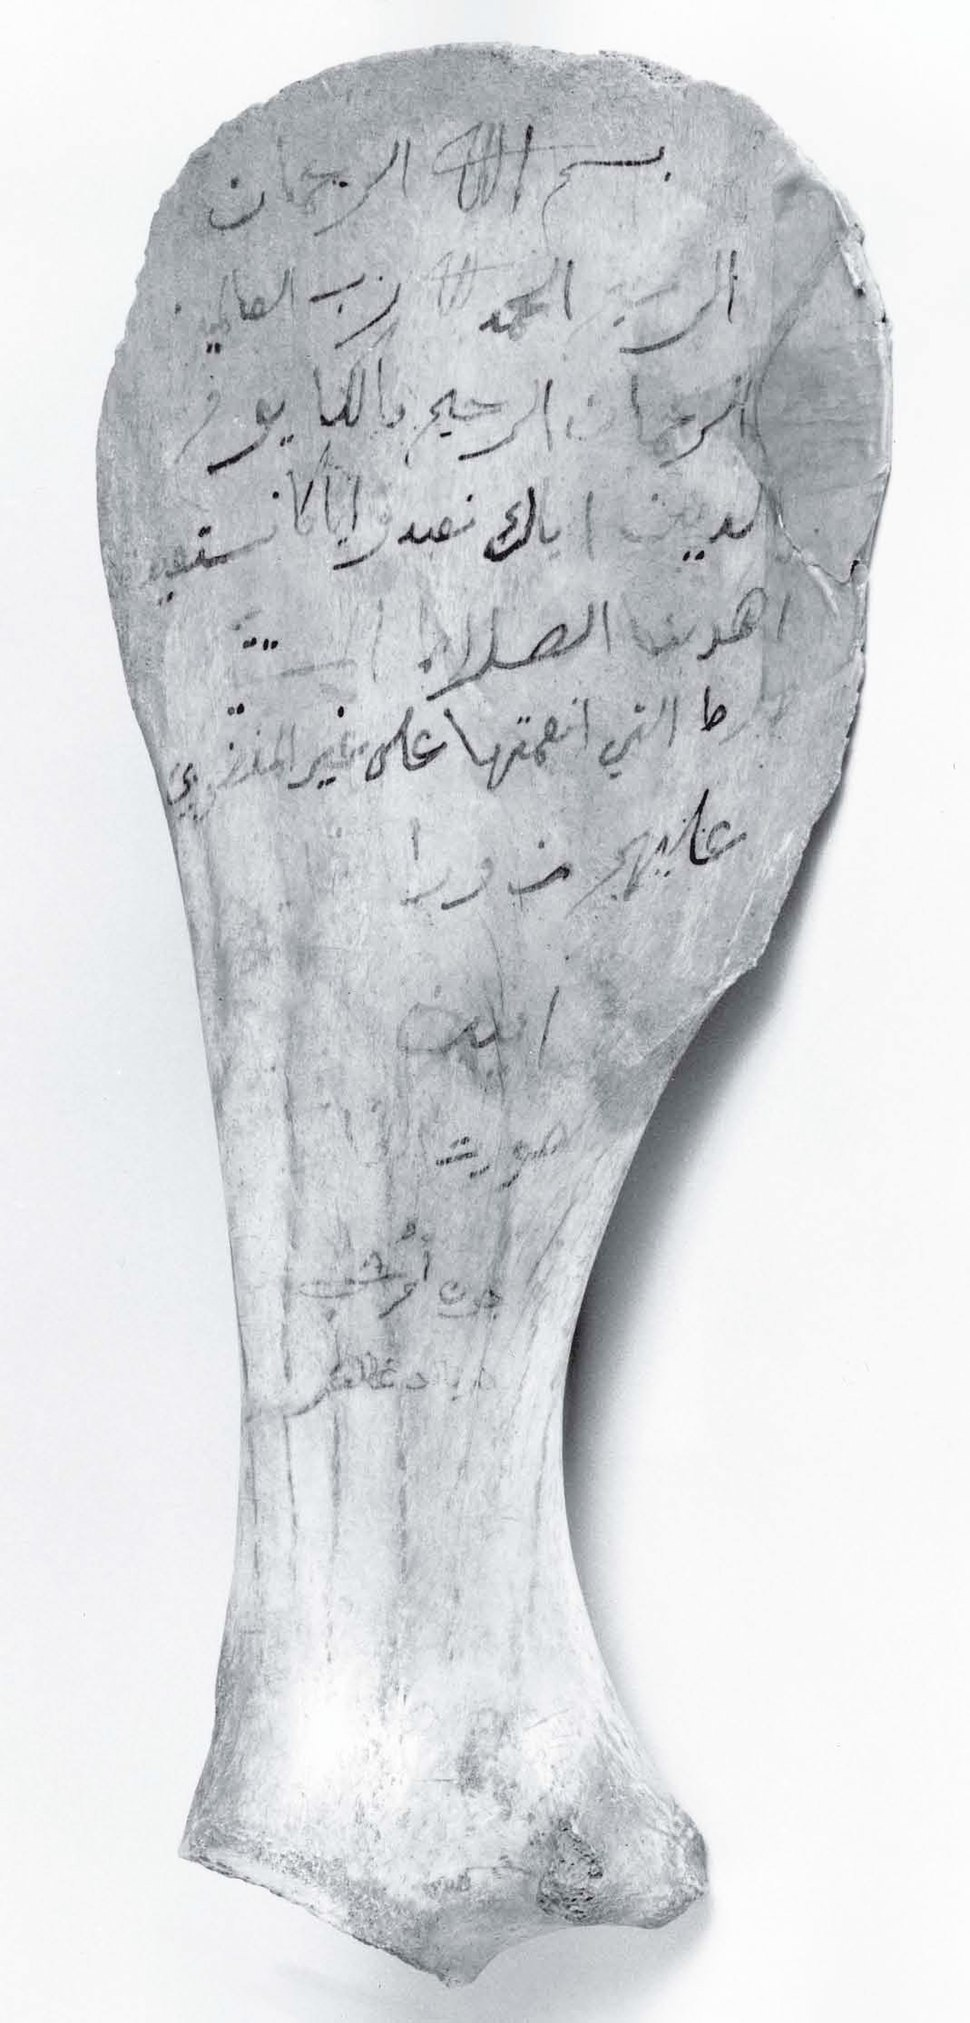 Surat al-Fatiha inscribed upon the shoulder blade of a camel